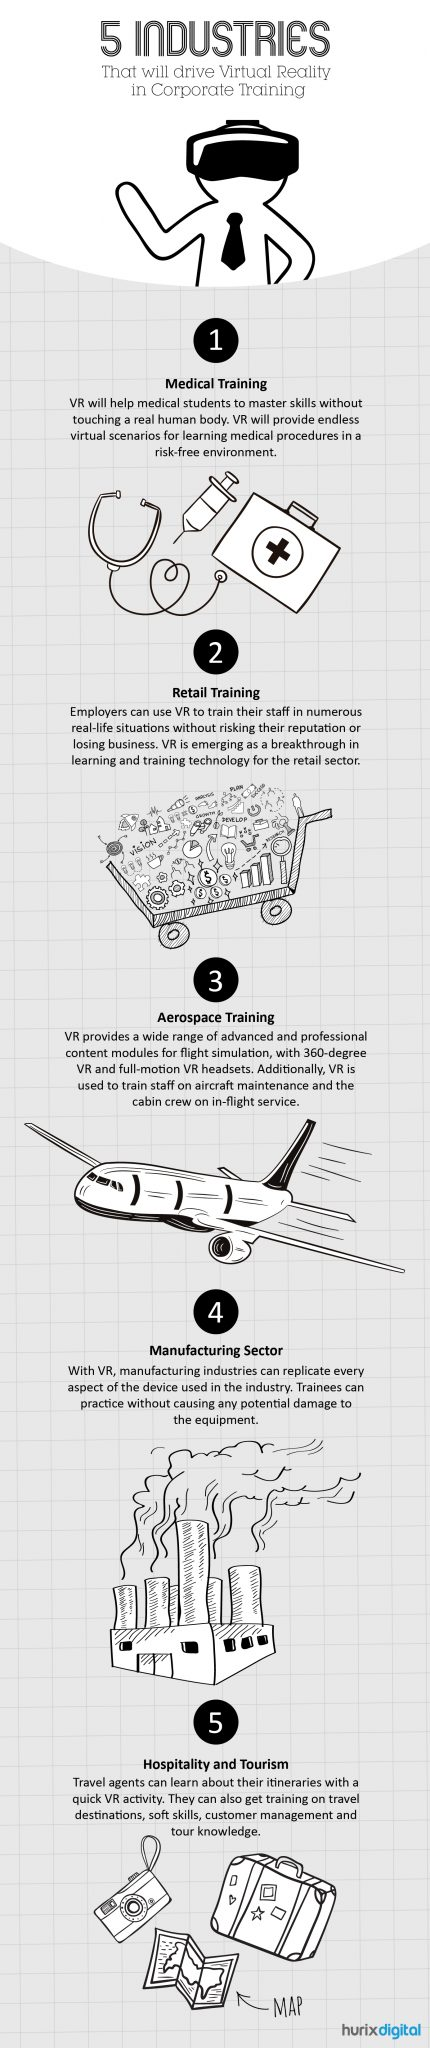 5 Industries That Will Drive Virtual Reality in Corporate Training_Info-Graphic (1)